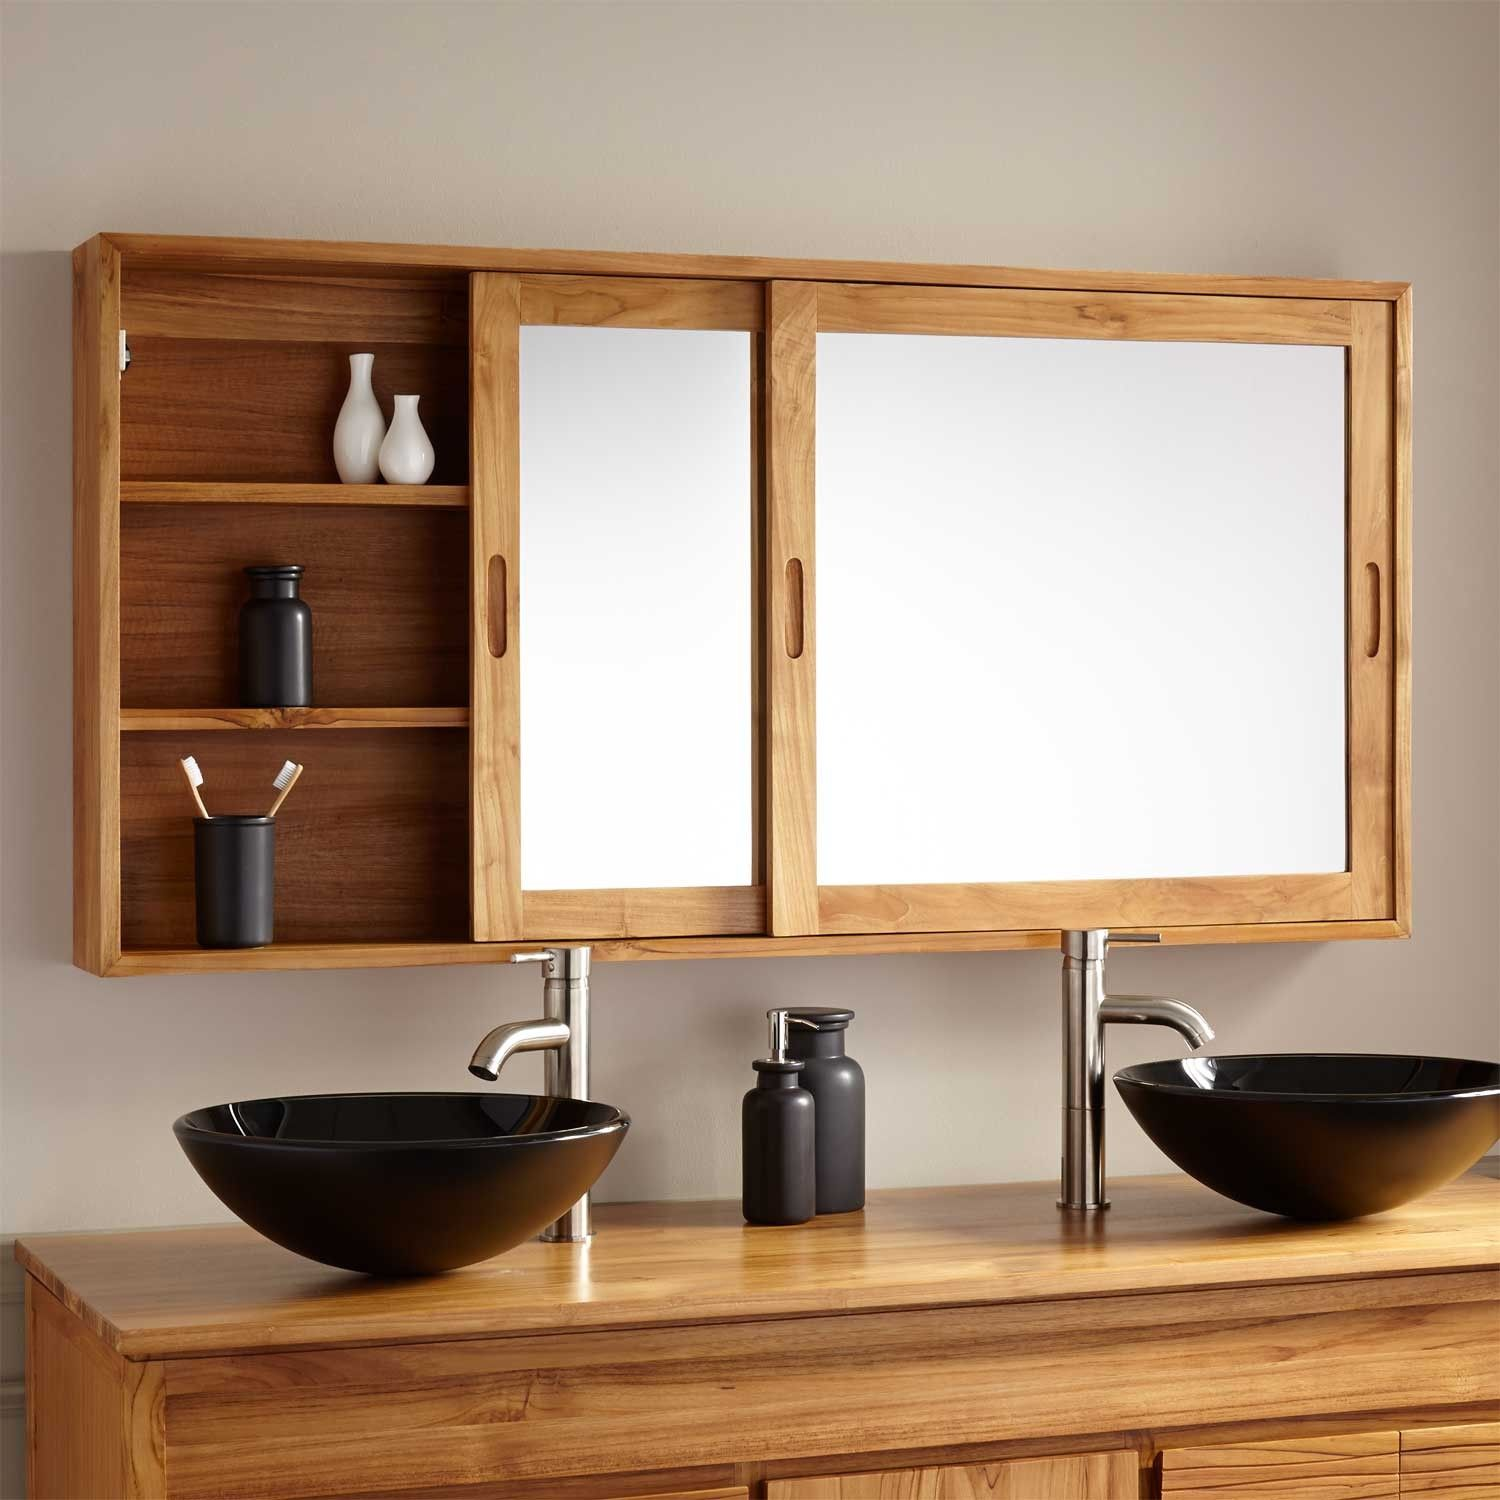 designs furniture teak ideas and famous bathroom great decors